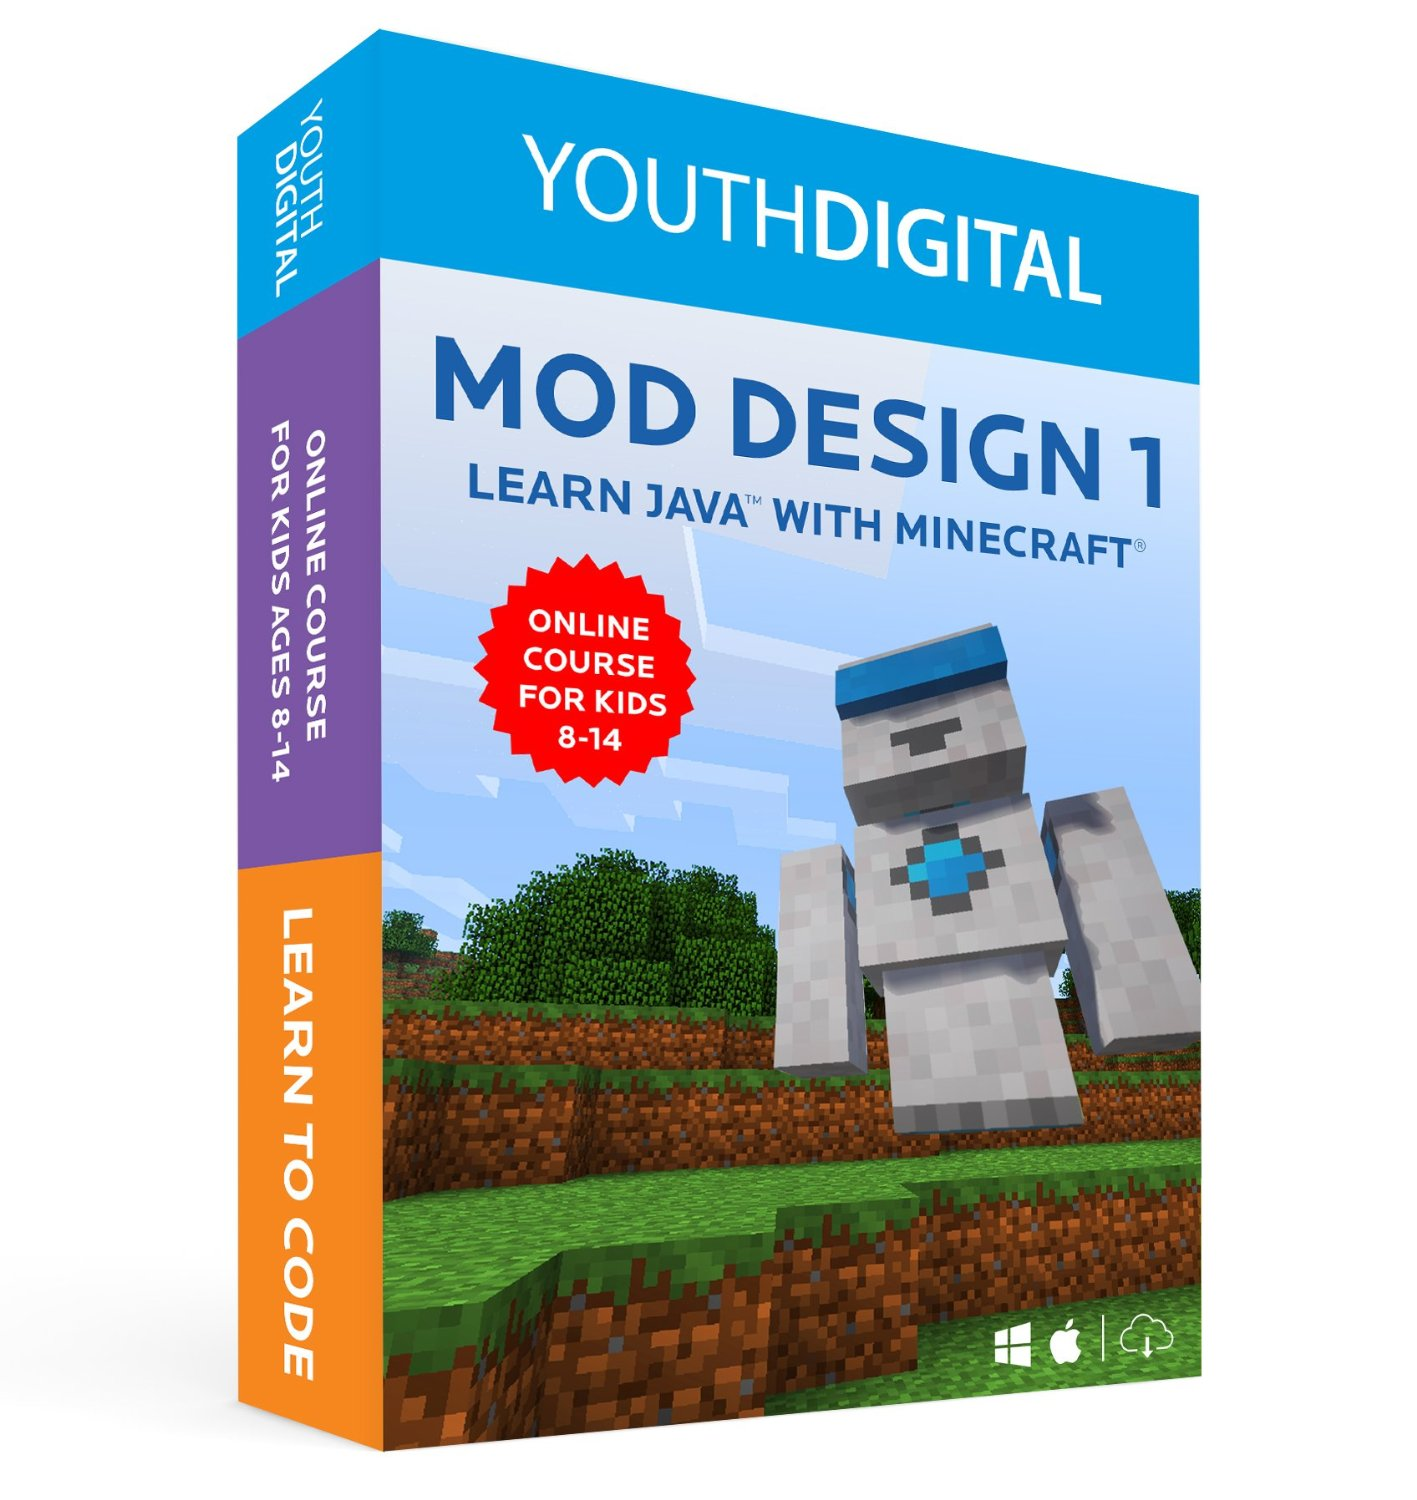 Mod Design 1 Learn Java With Minecraft Only 149